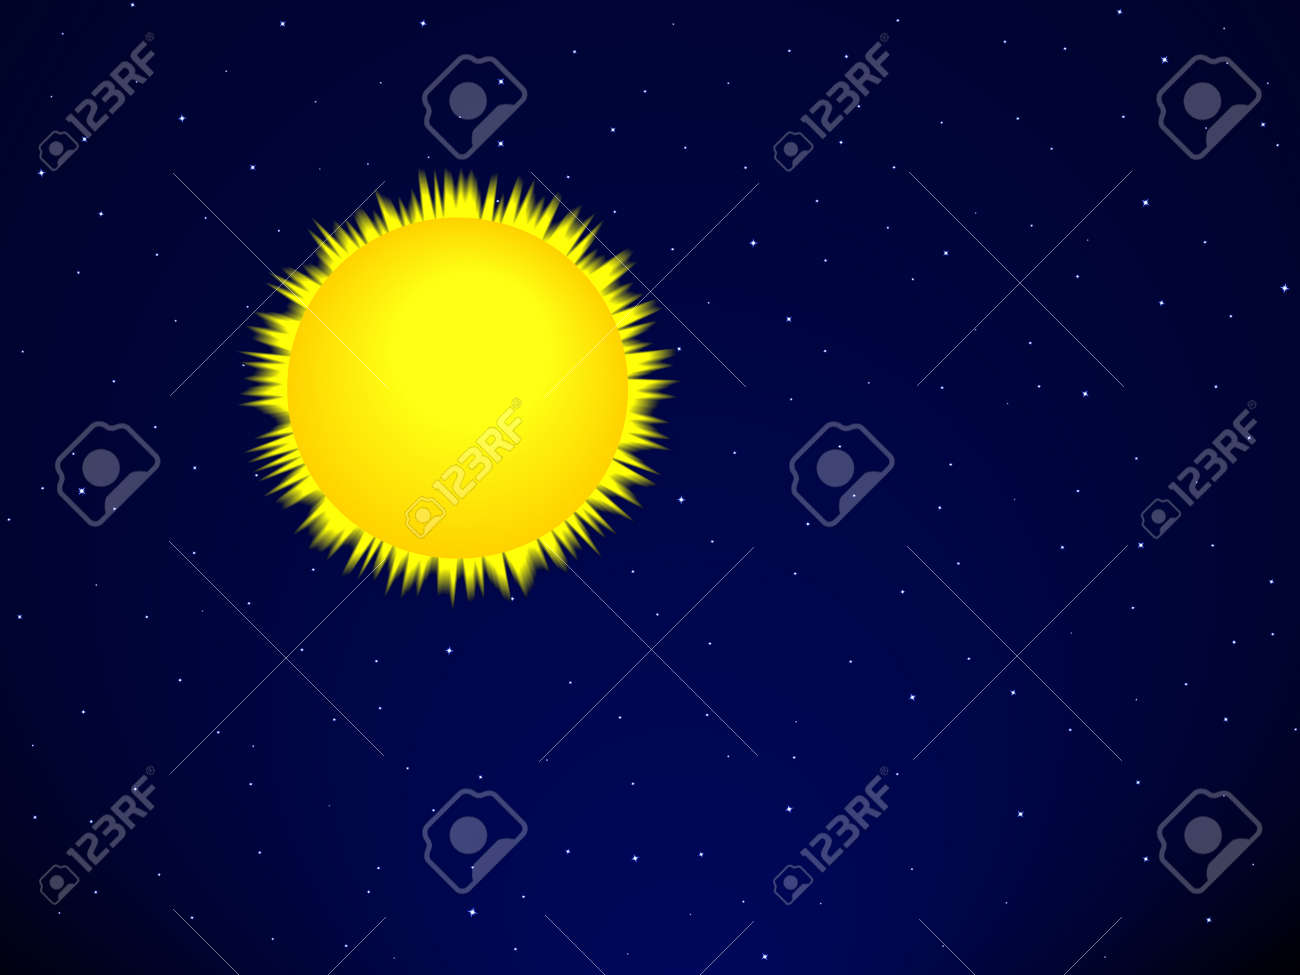 Sun on the space background Stock Vector - 29231144